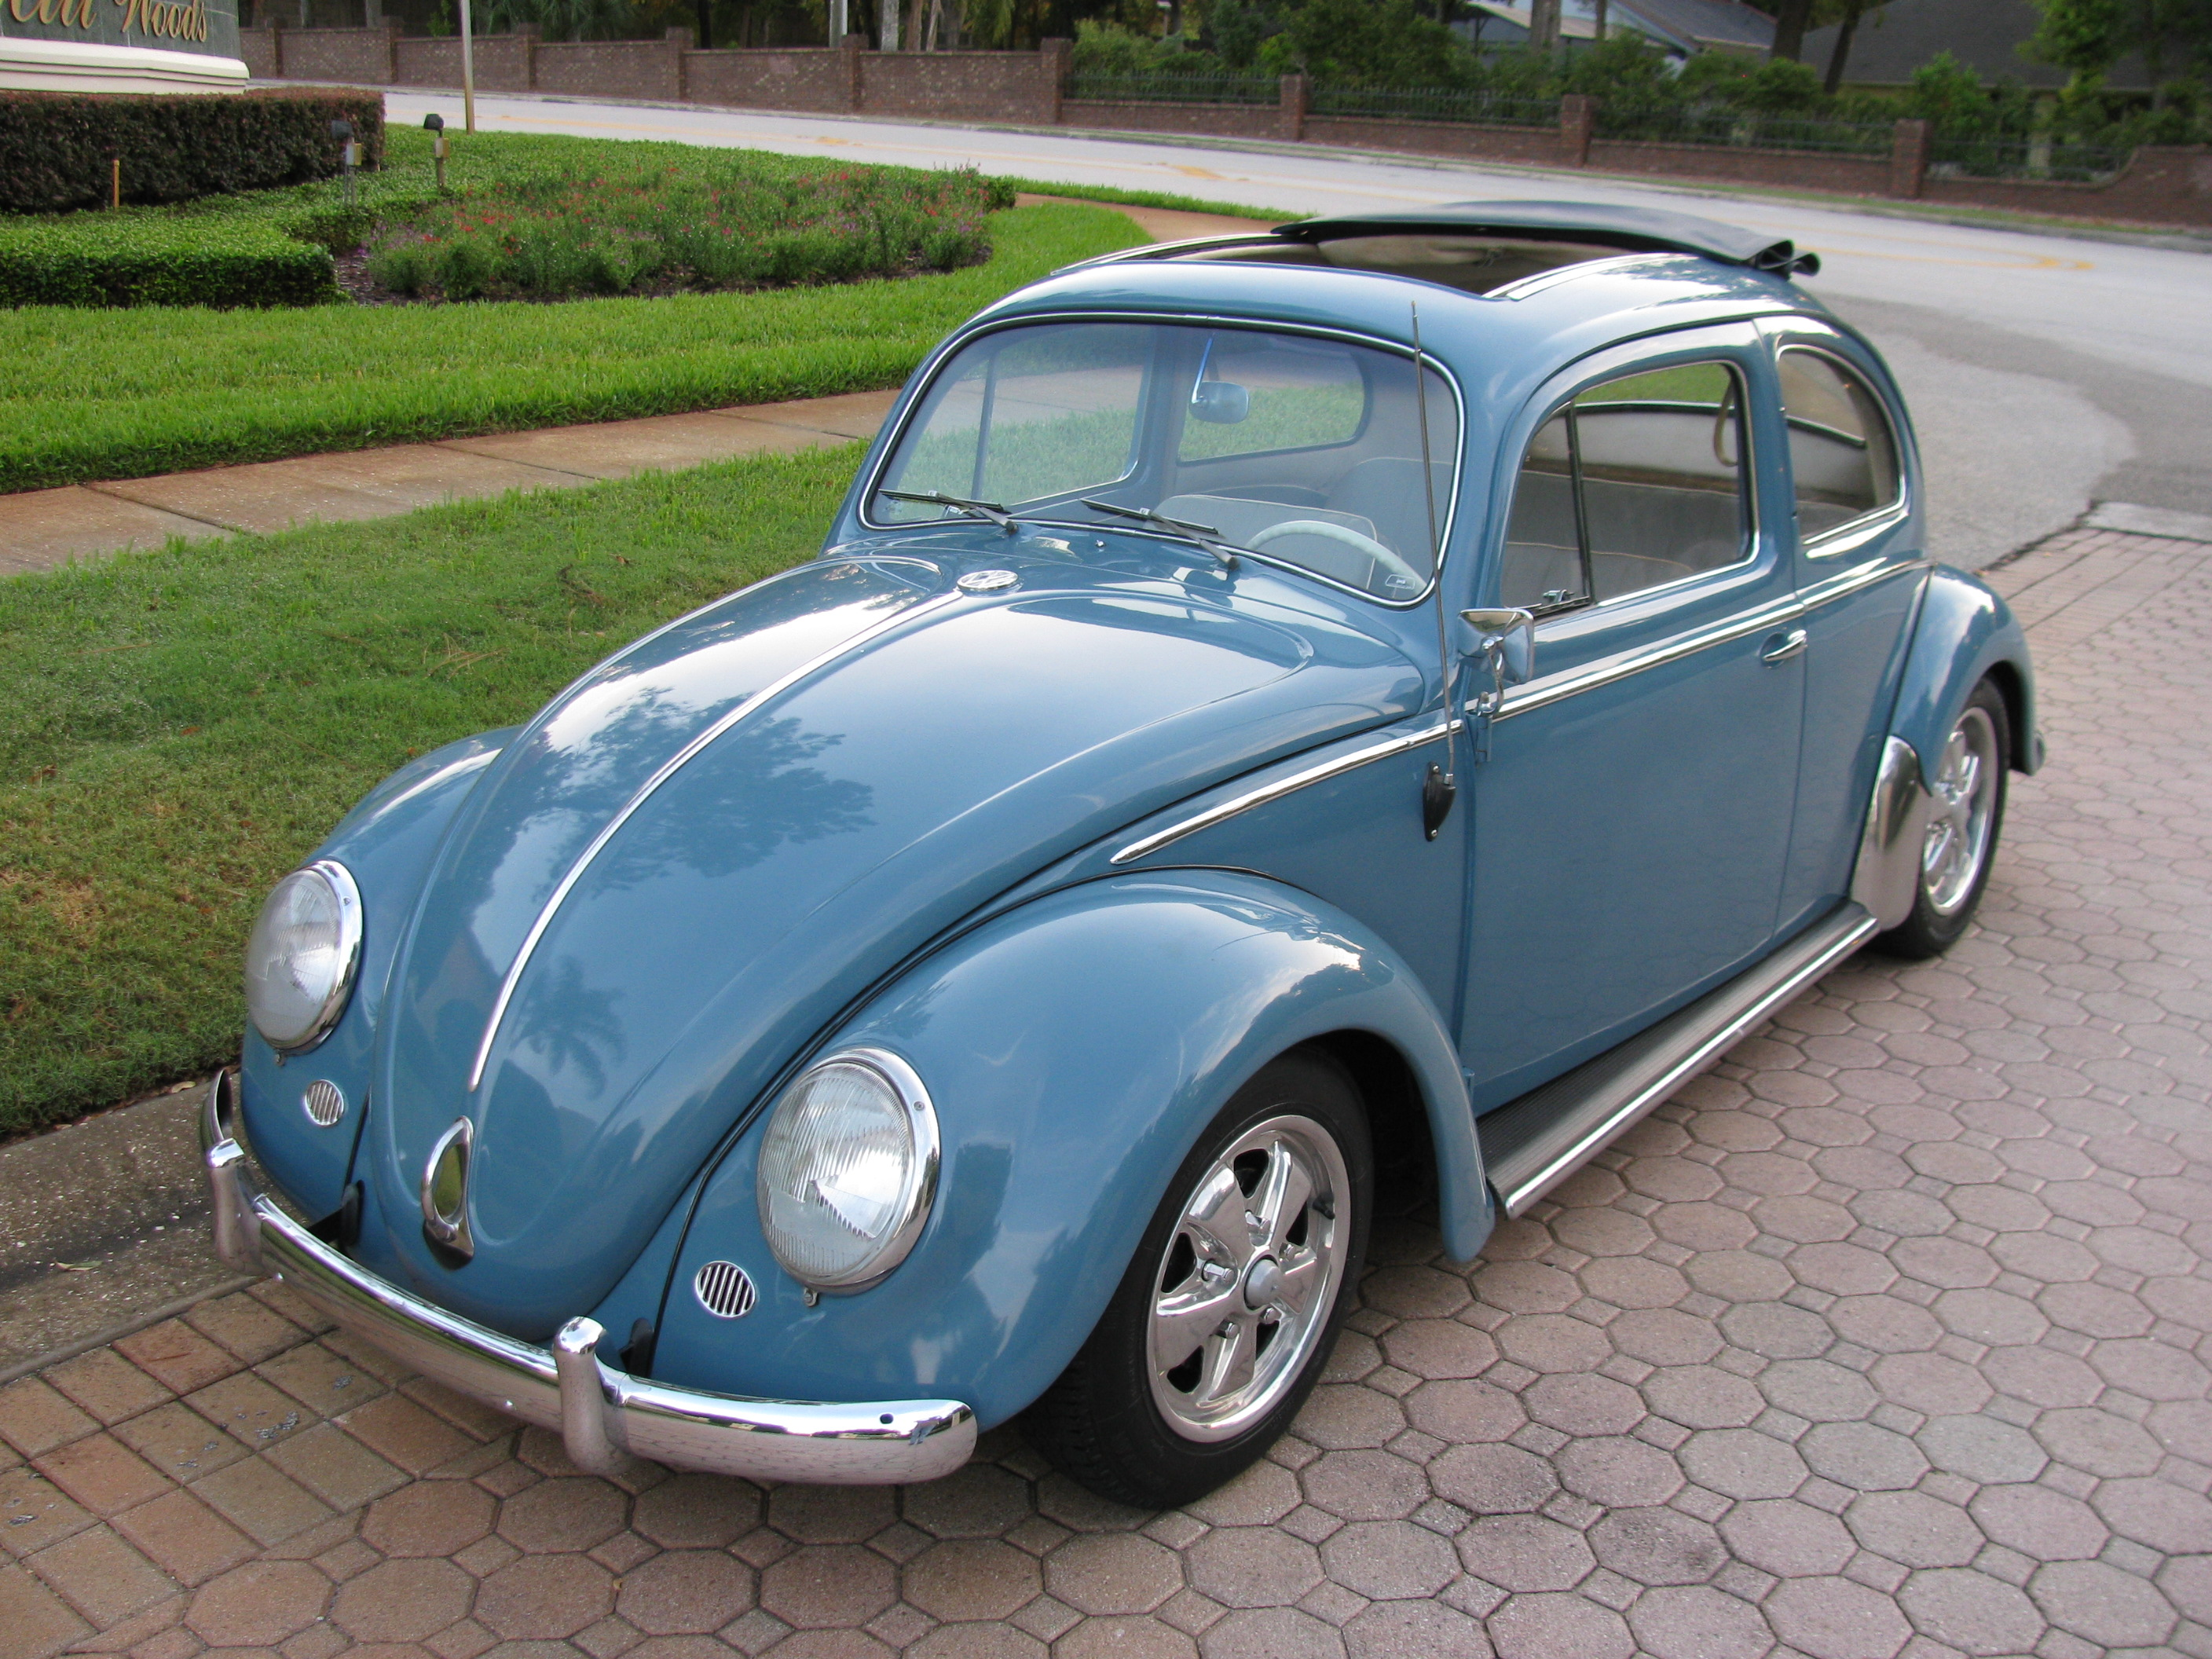 1000 images about vw bugs on pinterest vw bugs beetle and vw beetles. Black Bedroom Furniture Sets. Home Design Ideas